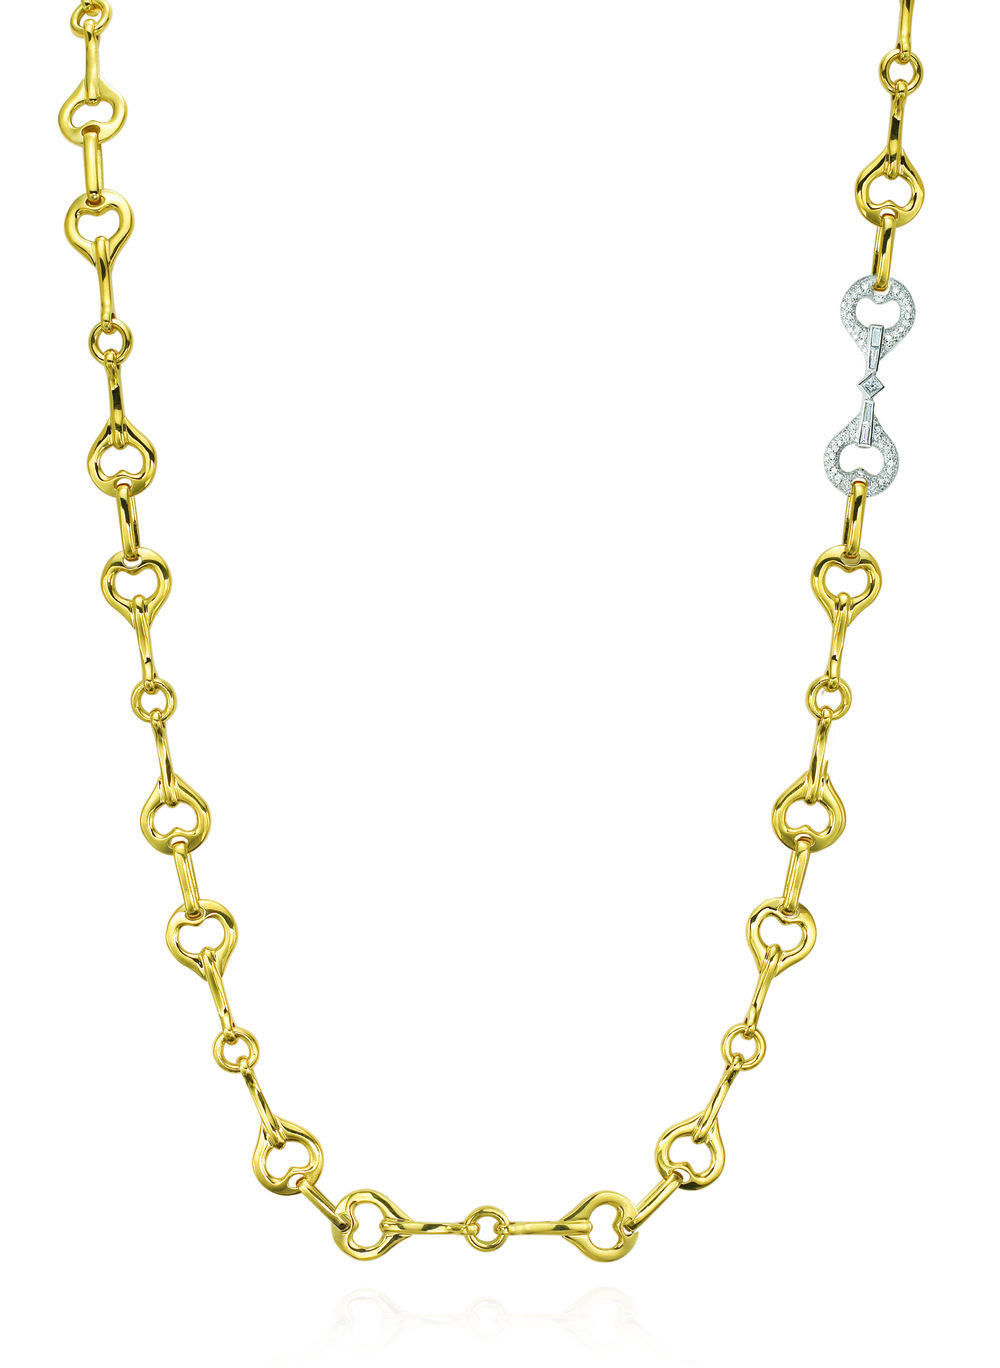 Gold & 1 WH Dia Section Gallop Necklace